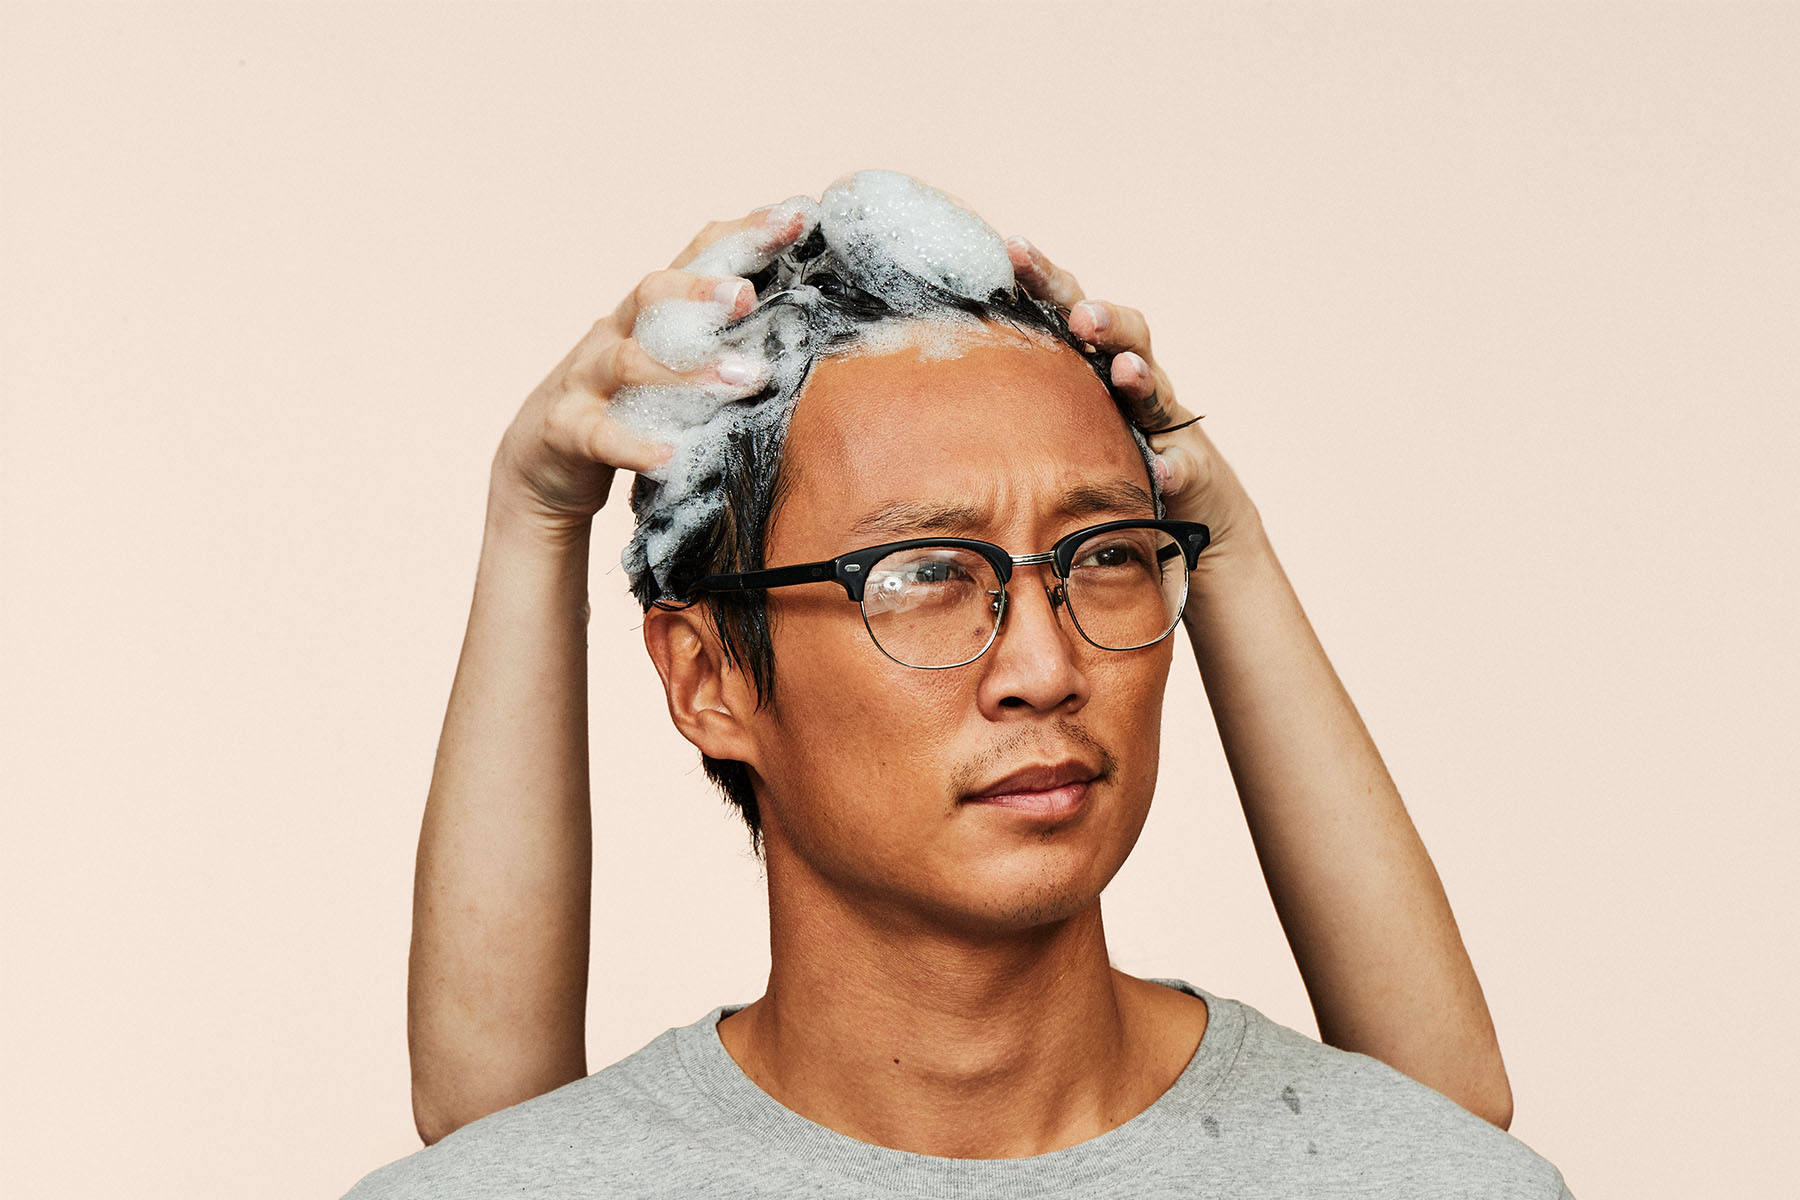 A man in glasses having his hair washed.